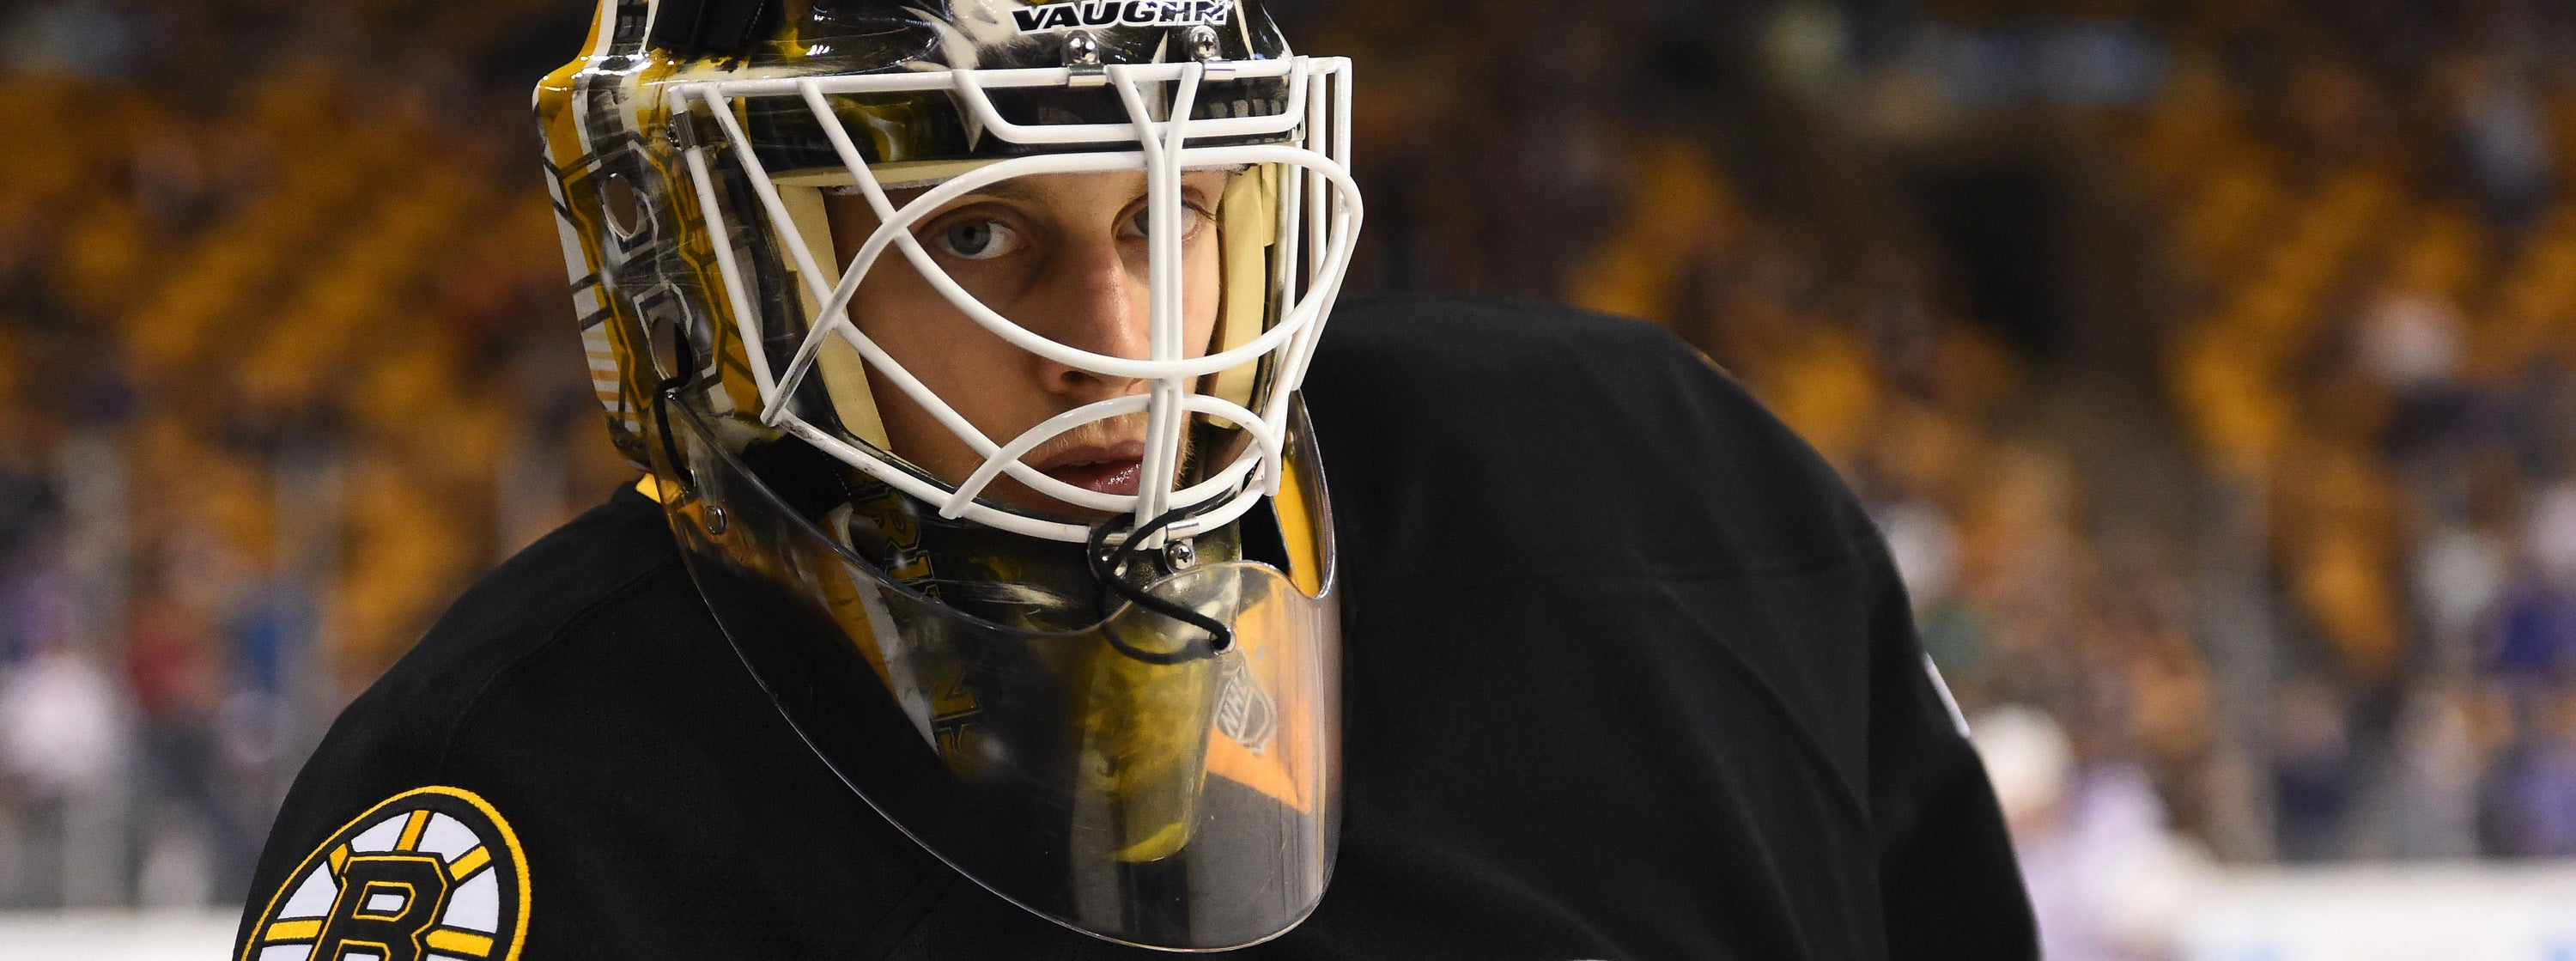 GOALIE SVEDBERG AGREES TO TERMS WITH WILD